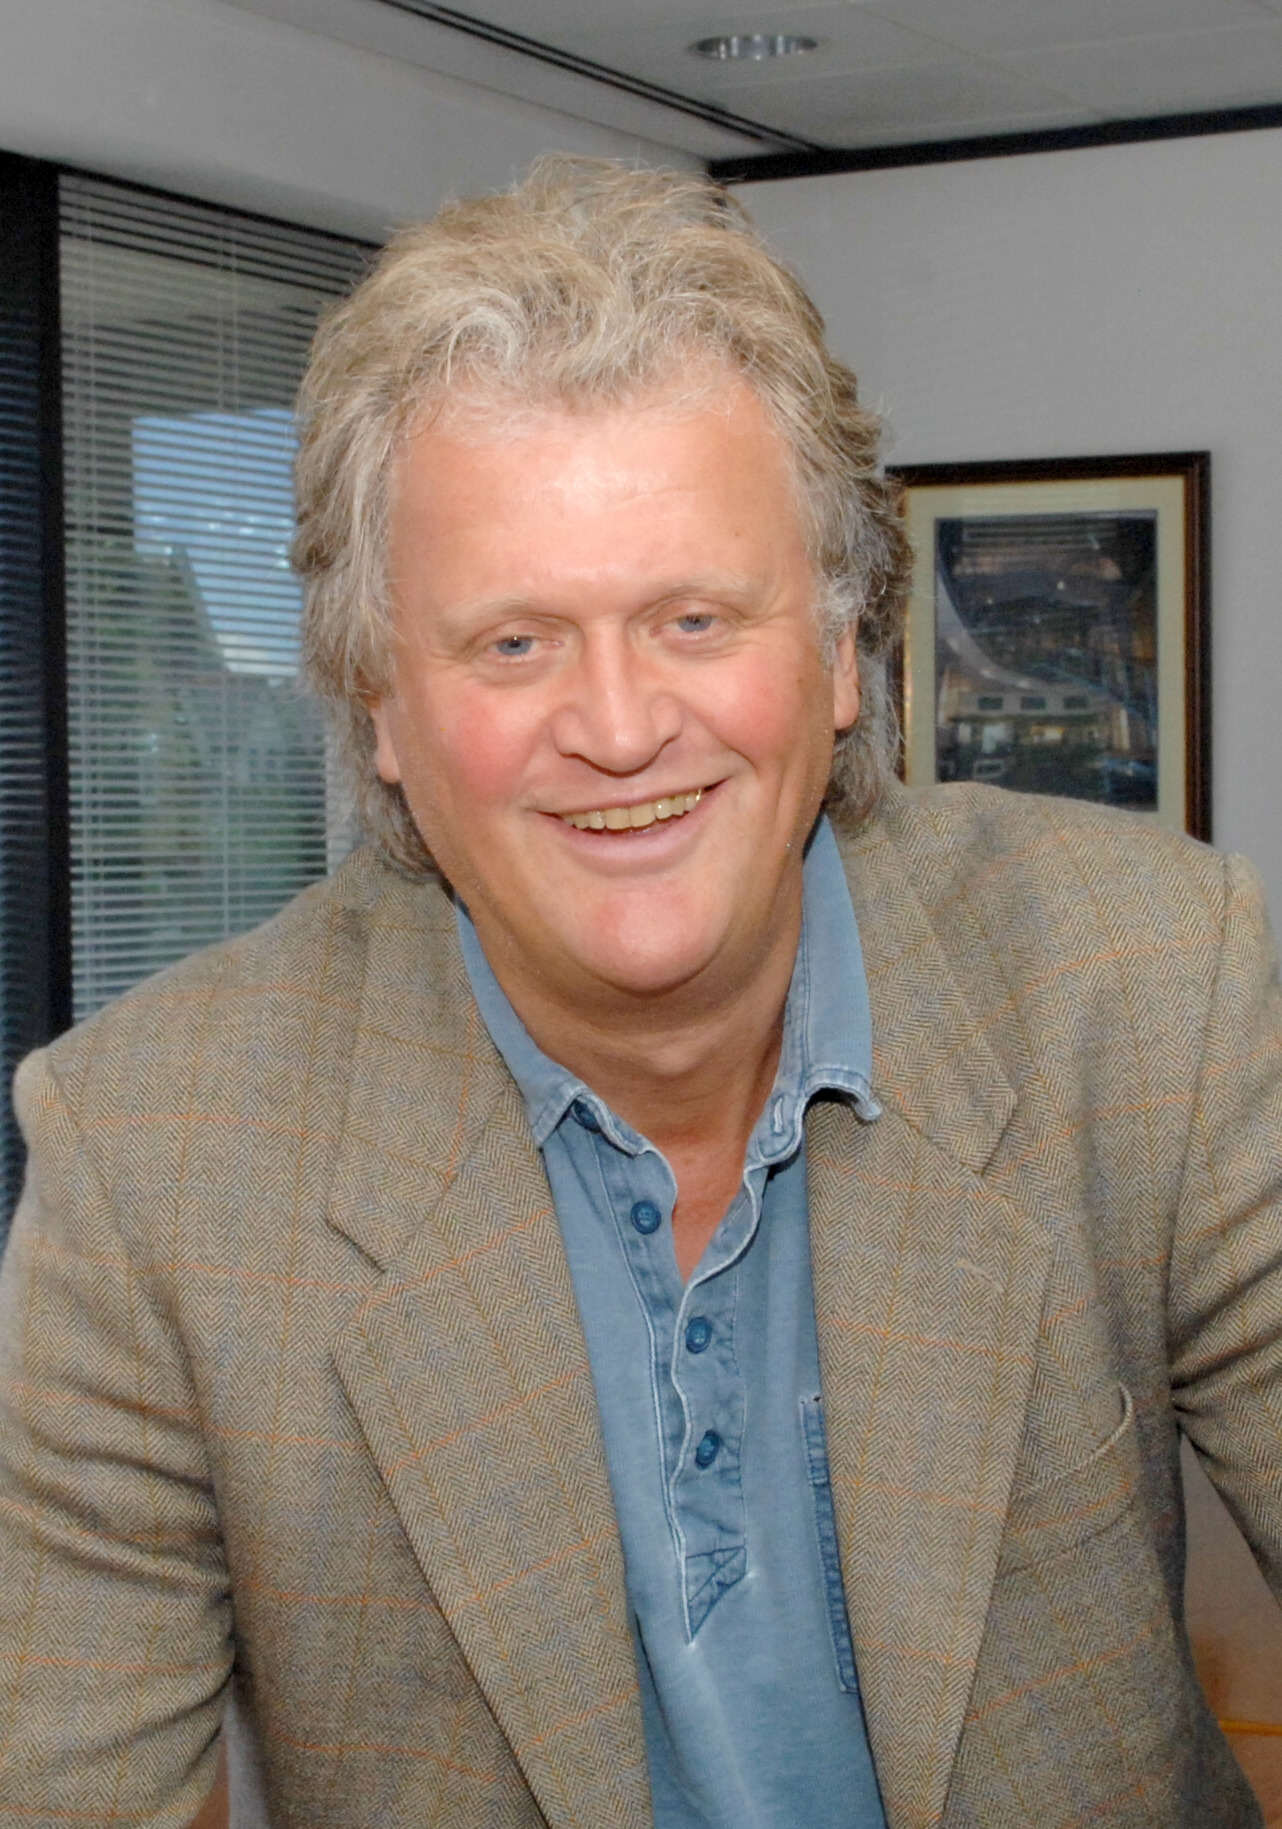 wetherspoon3 Brexit Supporting Wetherspoons Founder Lost Sh*t Ton Of Money After Leave Vote